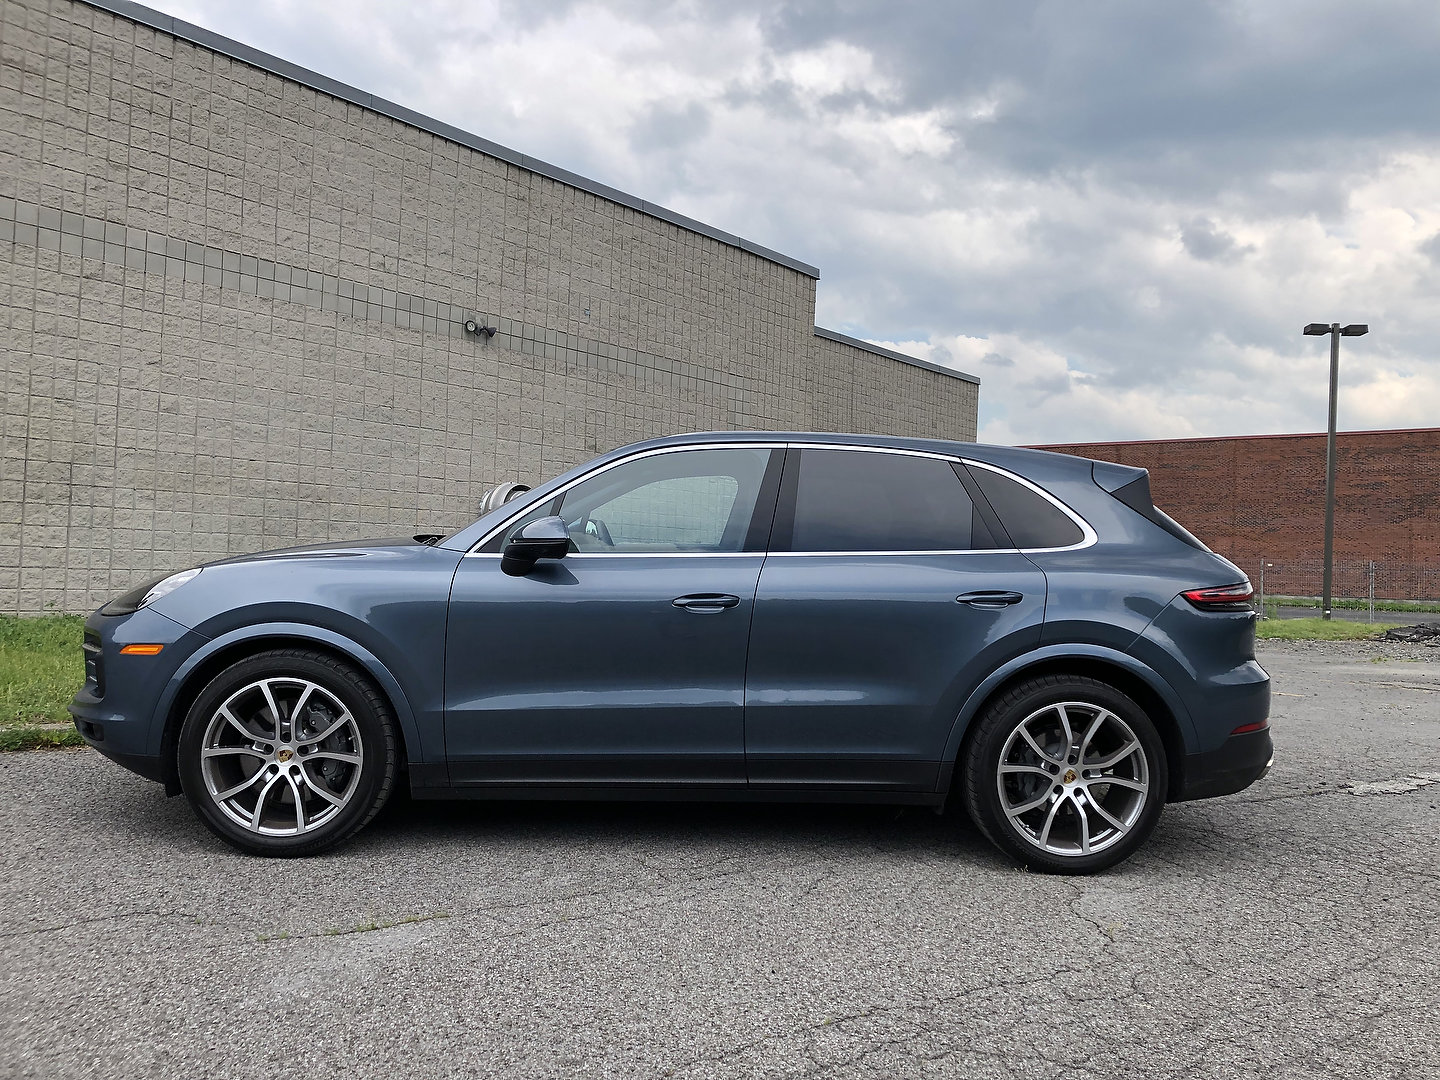 2019 Porsche Cayenne S Review: A Sporty Luxury SUV With A